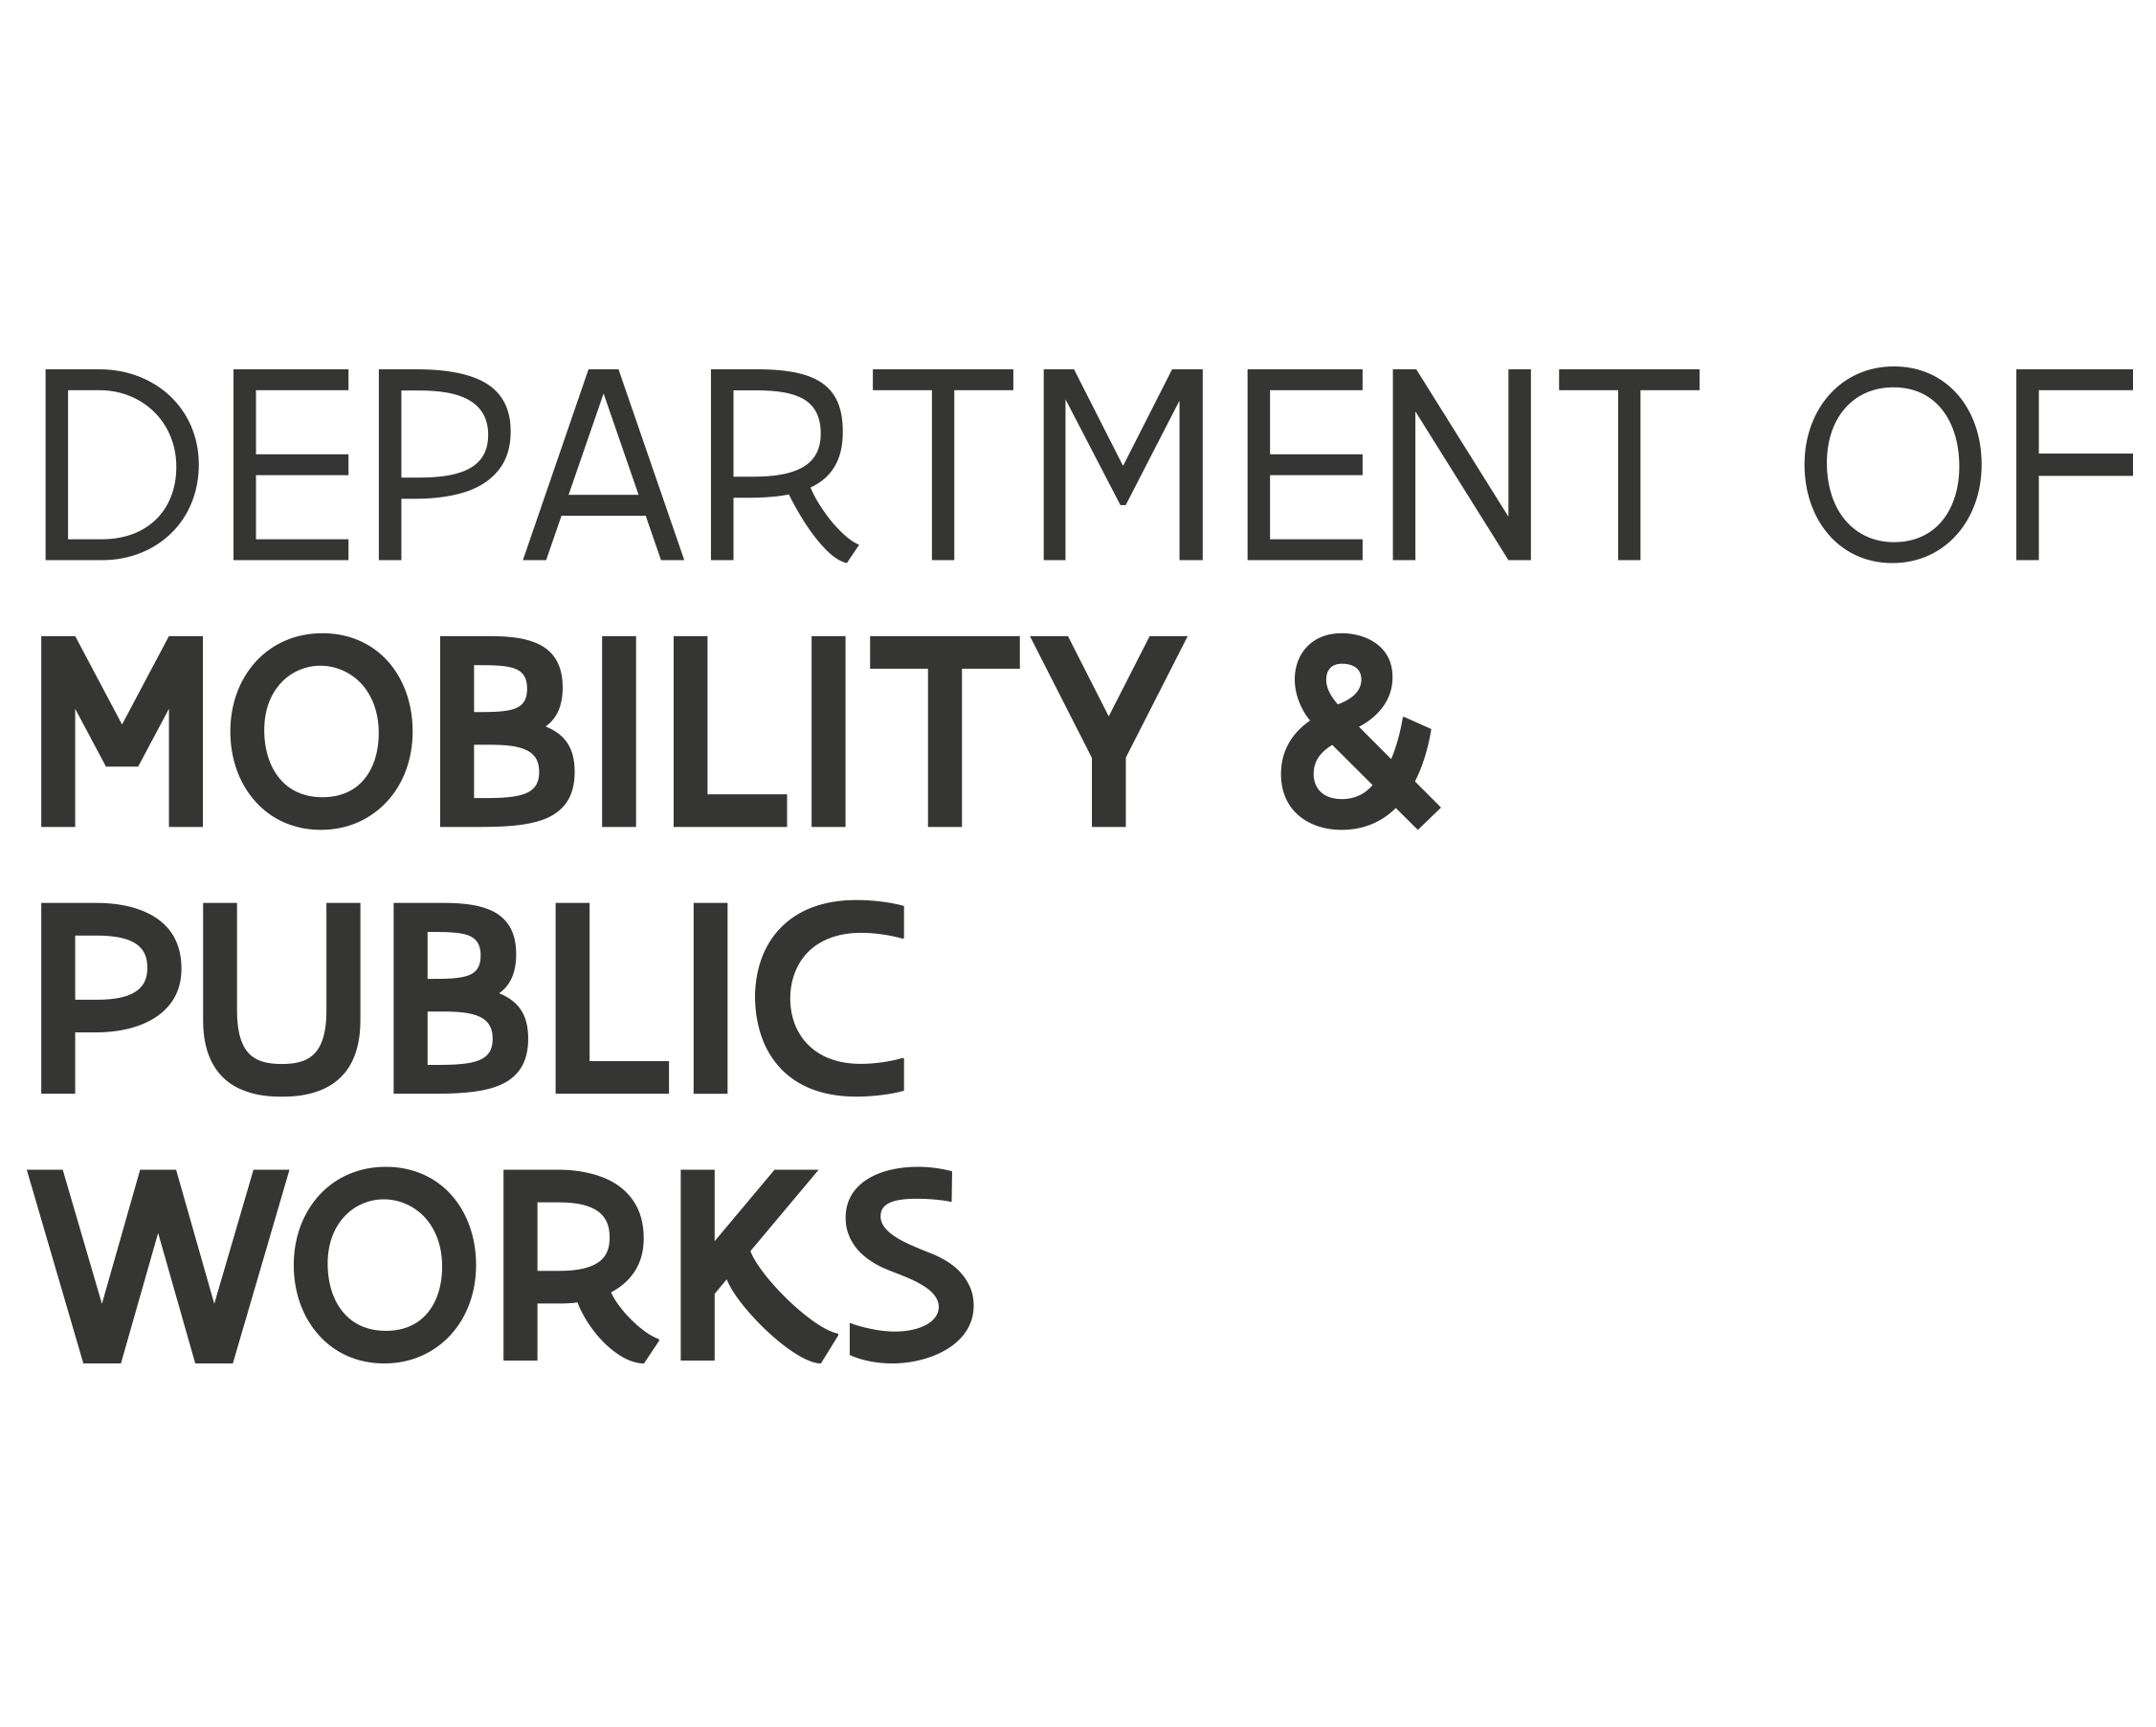 The Flemish Department of Mobility and Public Works logo